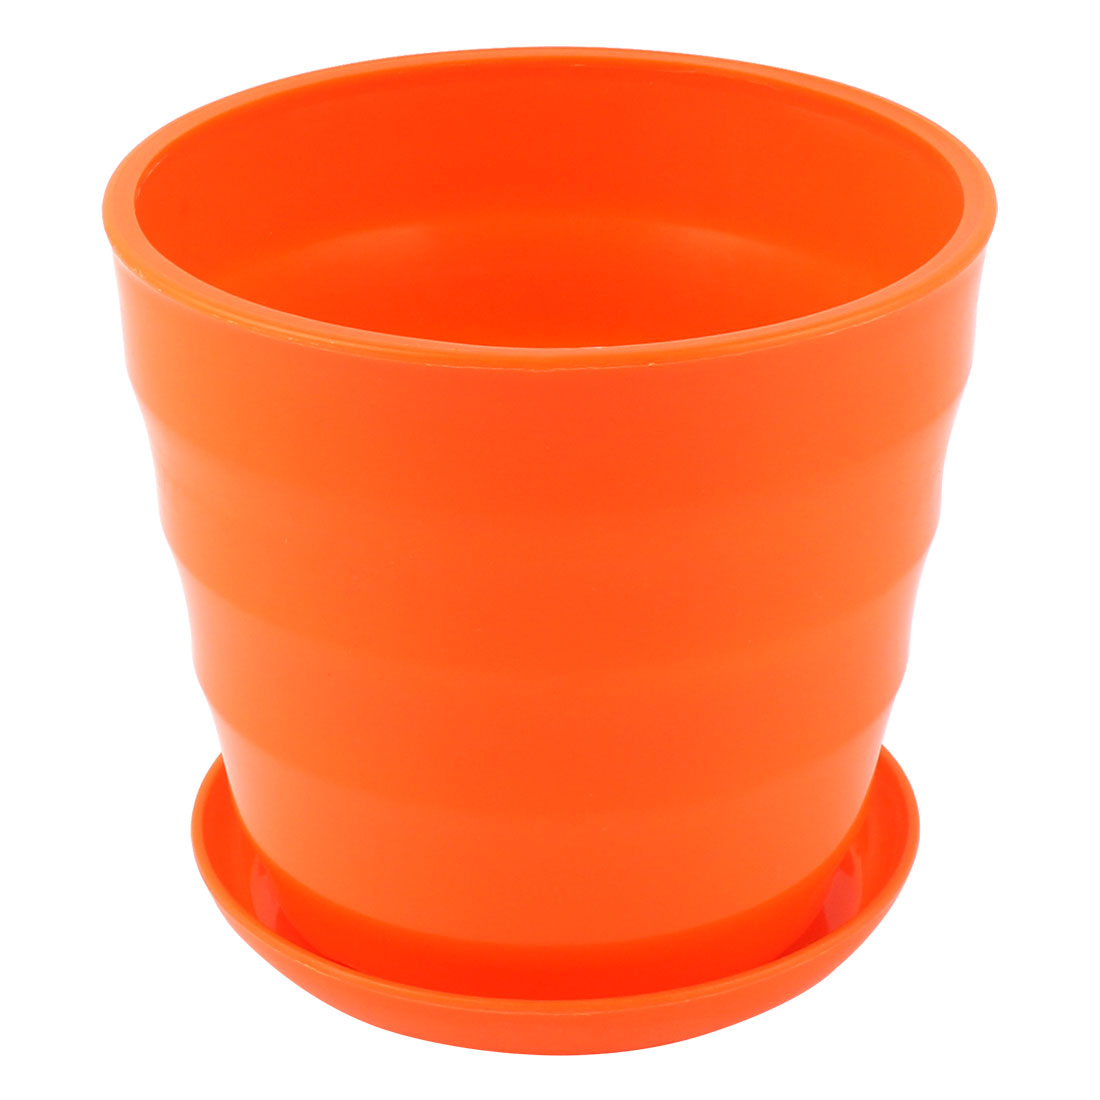 Product Image Home Garden Office Desk Plastic Round Plant Planter Flower Pot White 5 Inch Dia. Product Variants Selector. Orange  sc 1 st  Walmart & Orange Pots \u0026 Planters - Walmart.com